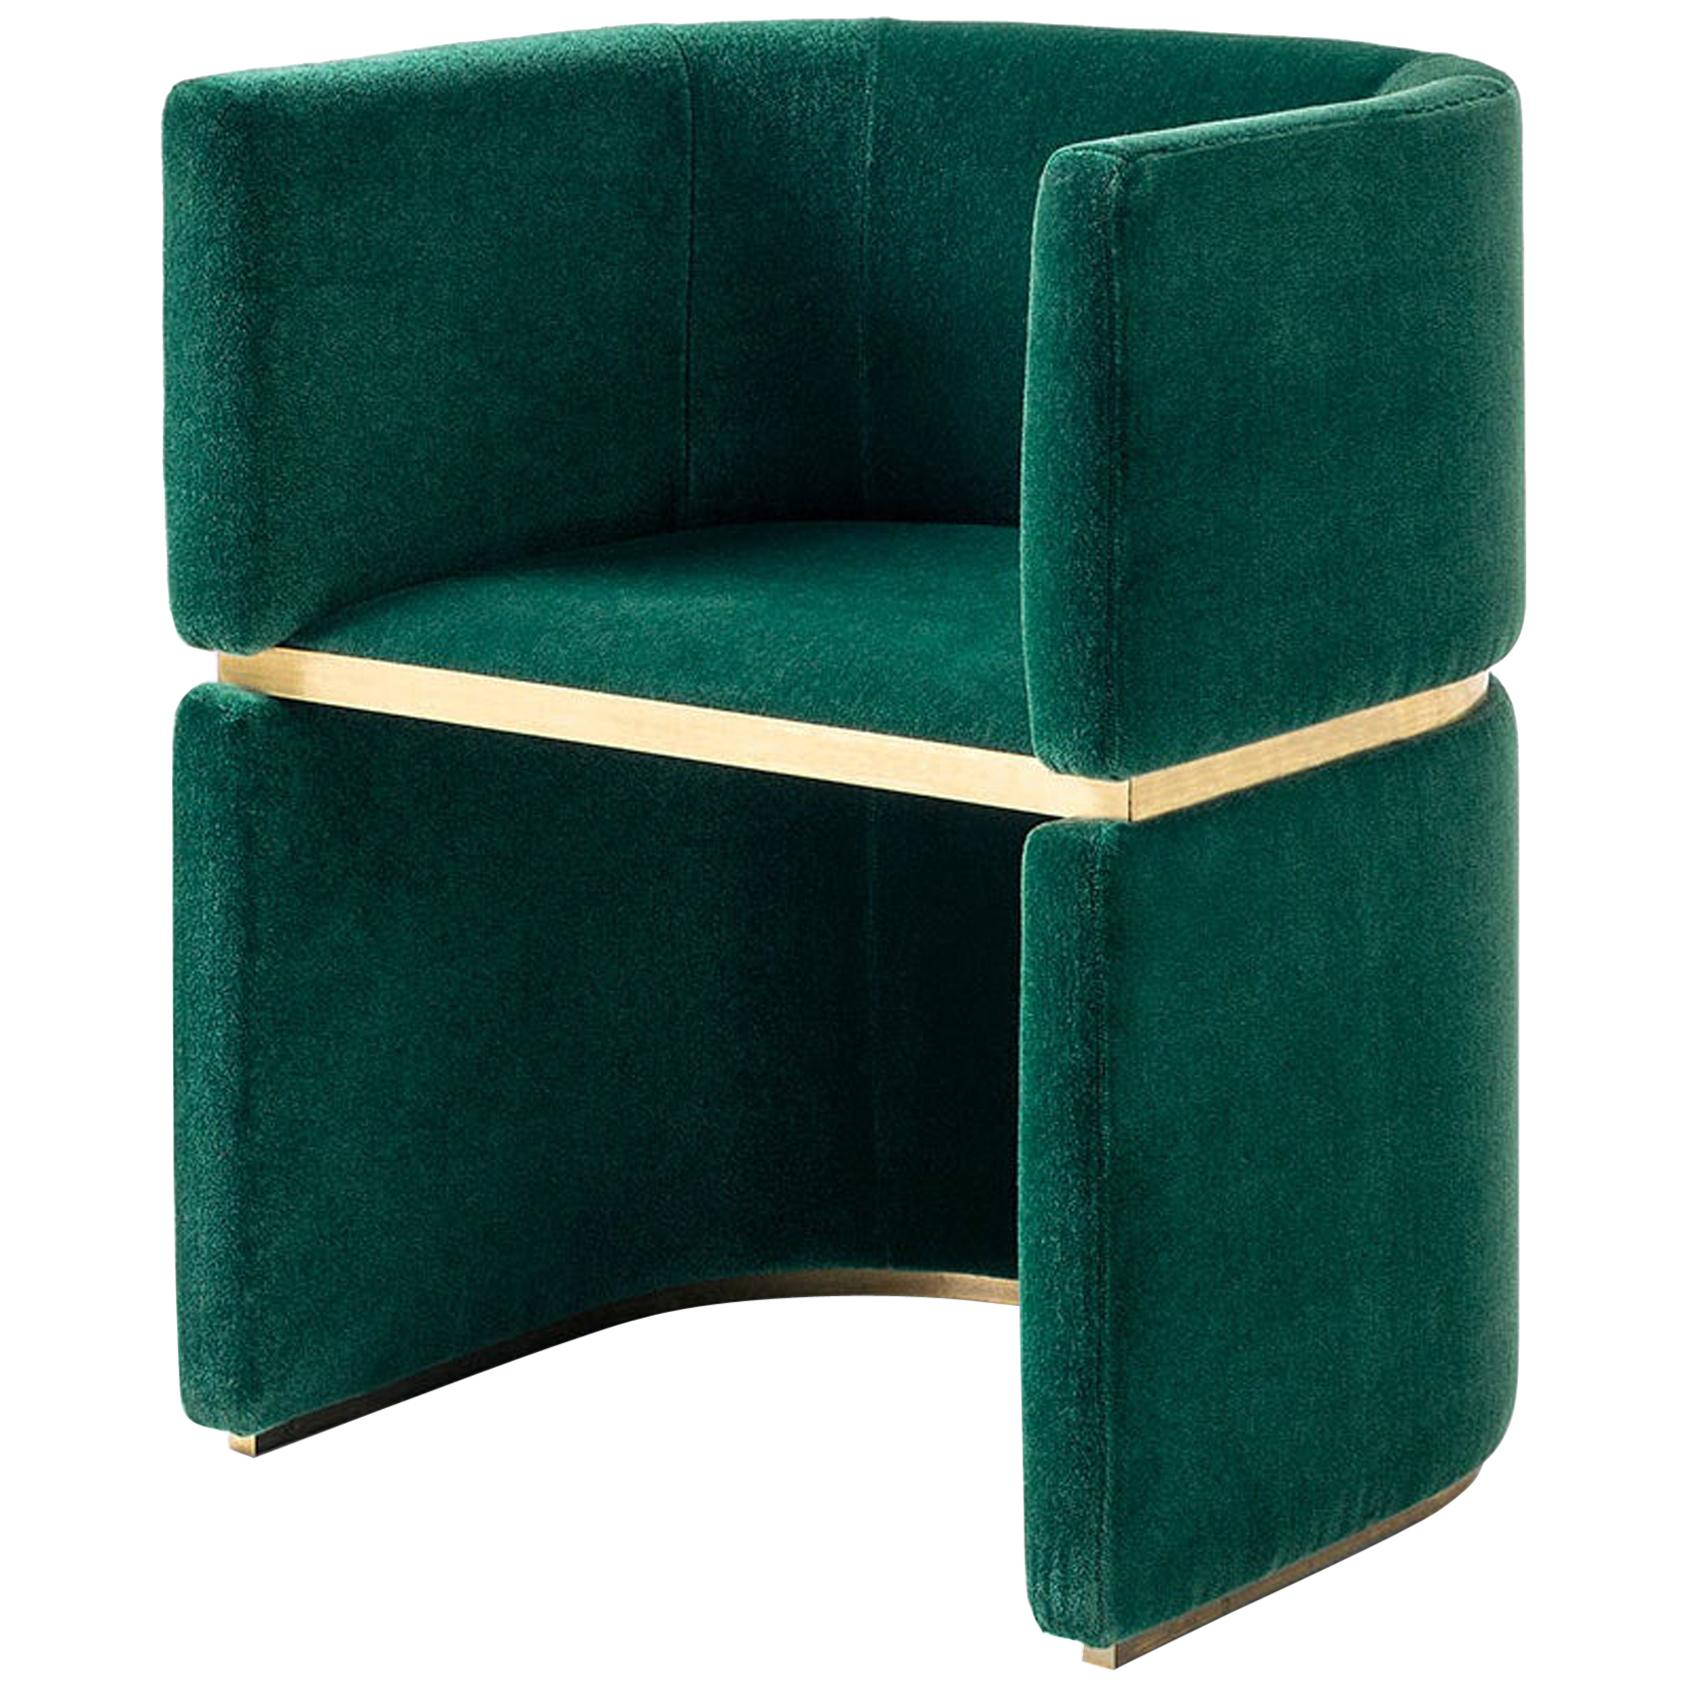 Forest Green Mohair Upholstered Club Chair with Brass Detailing by Dimoremilano